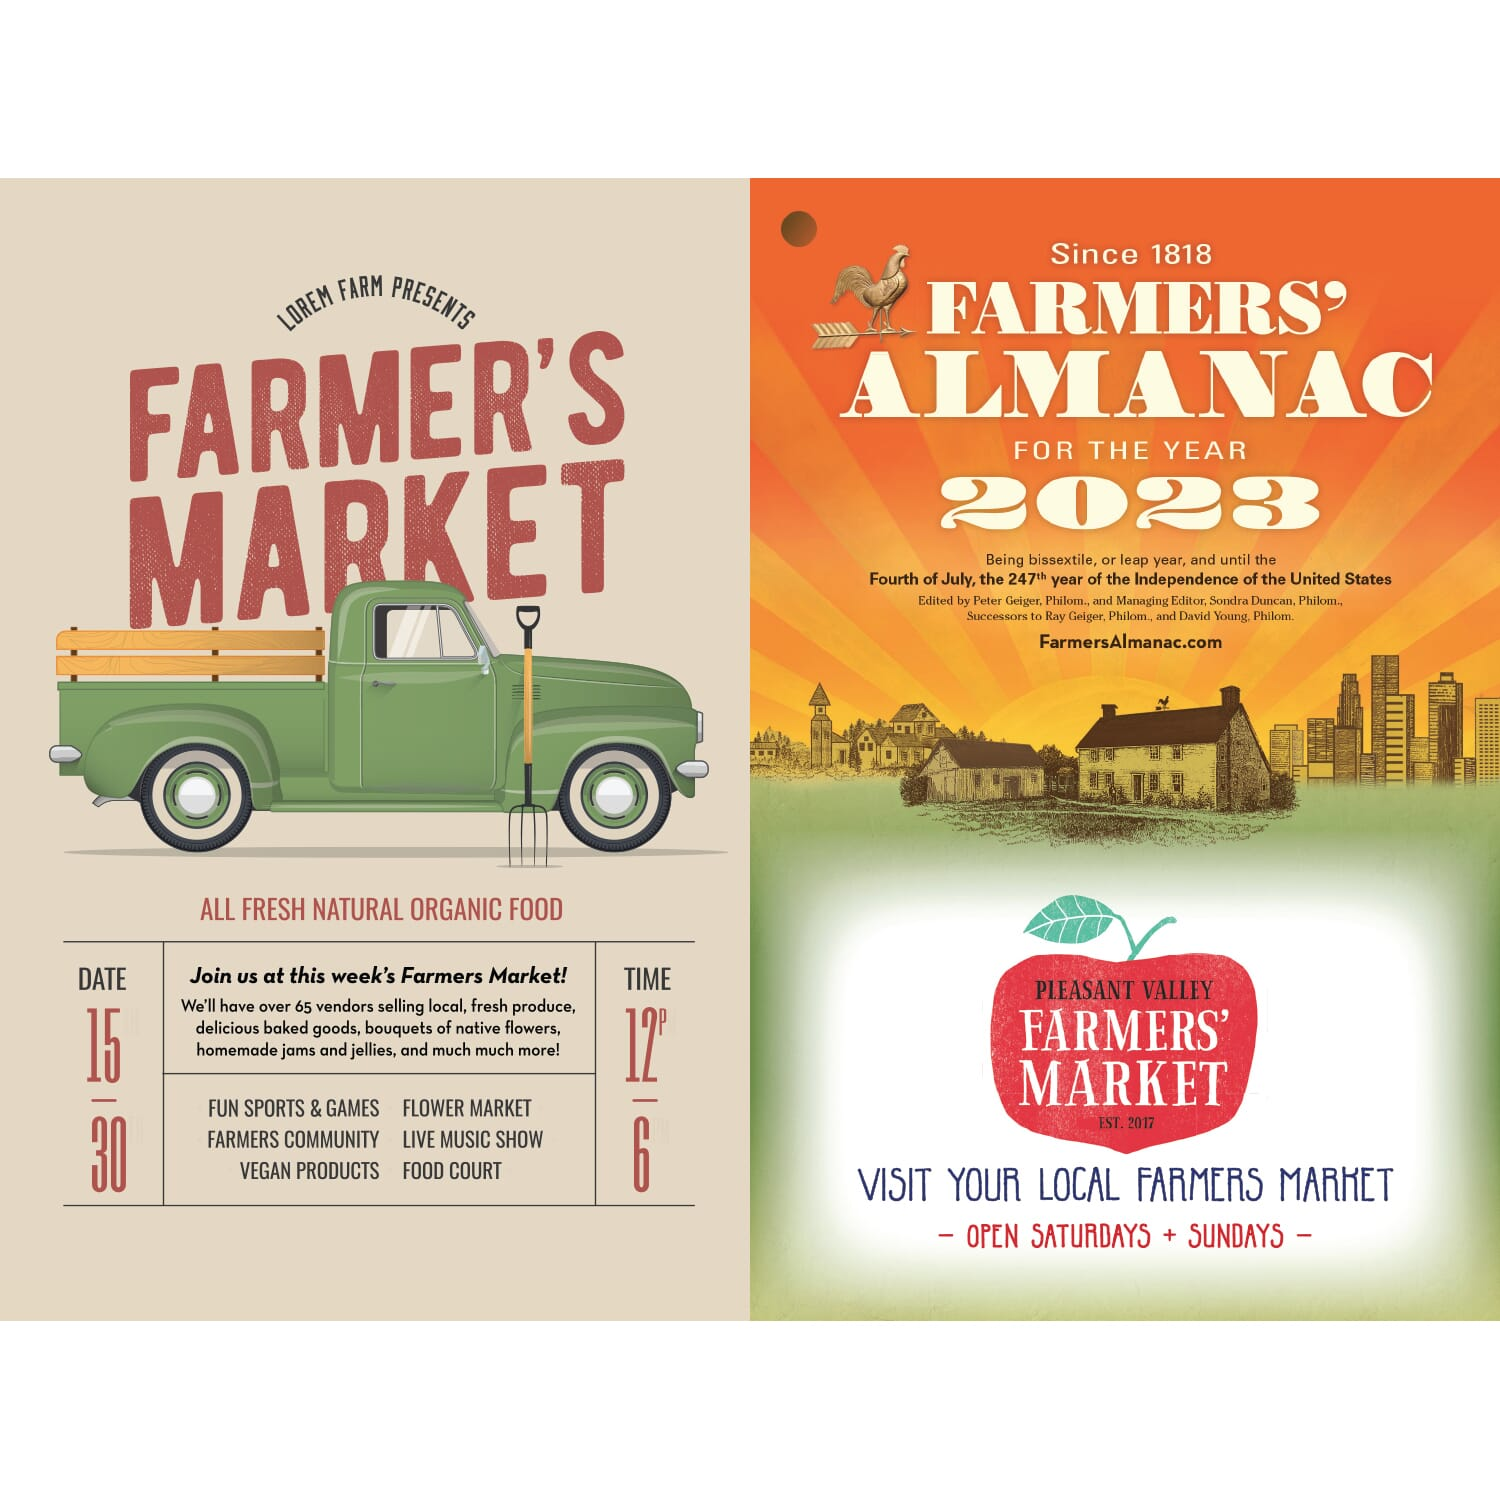 farmers almanac full color cover imprint